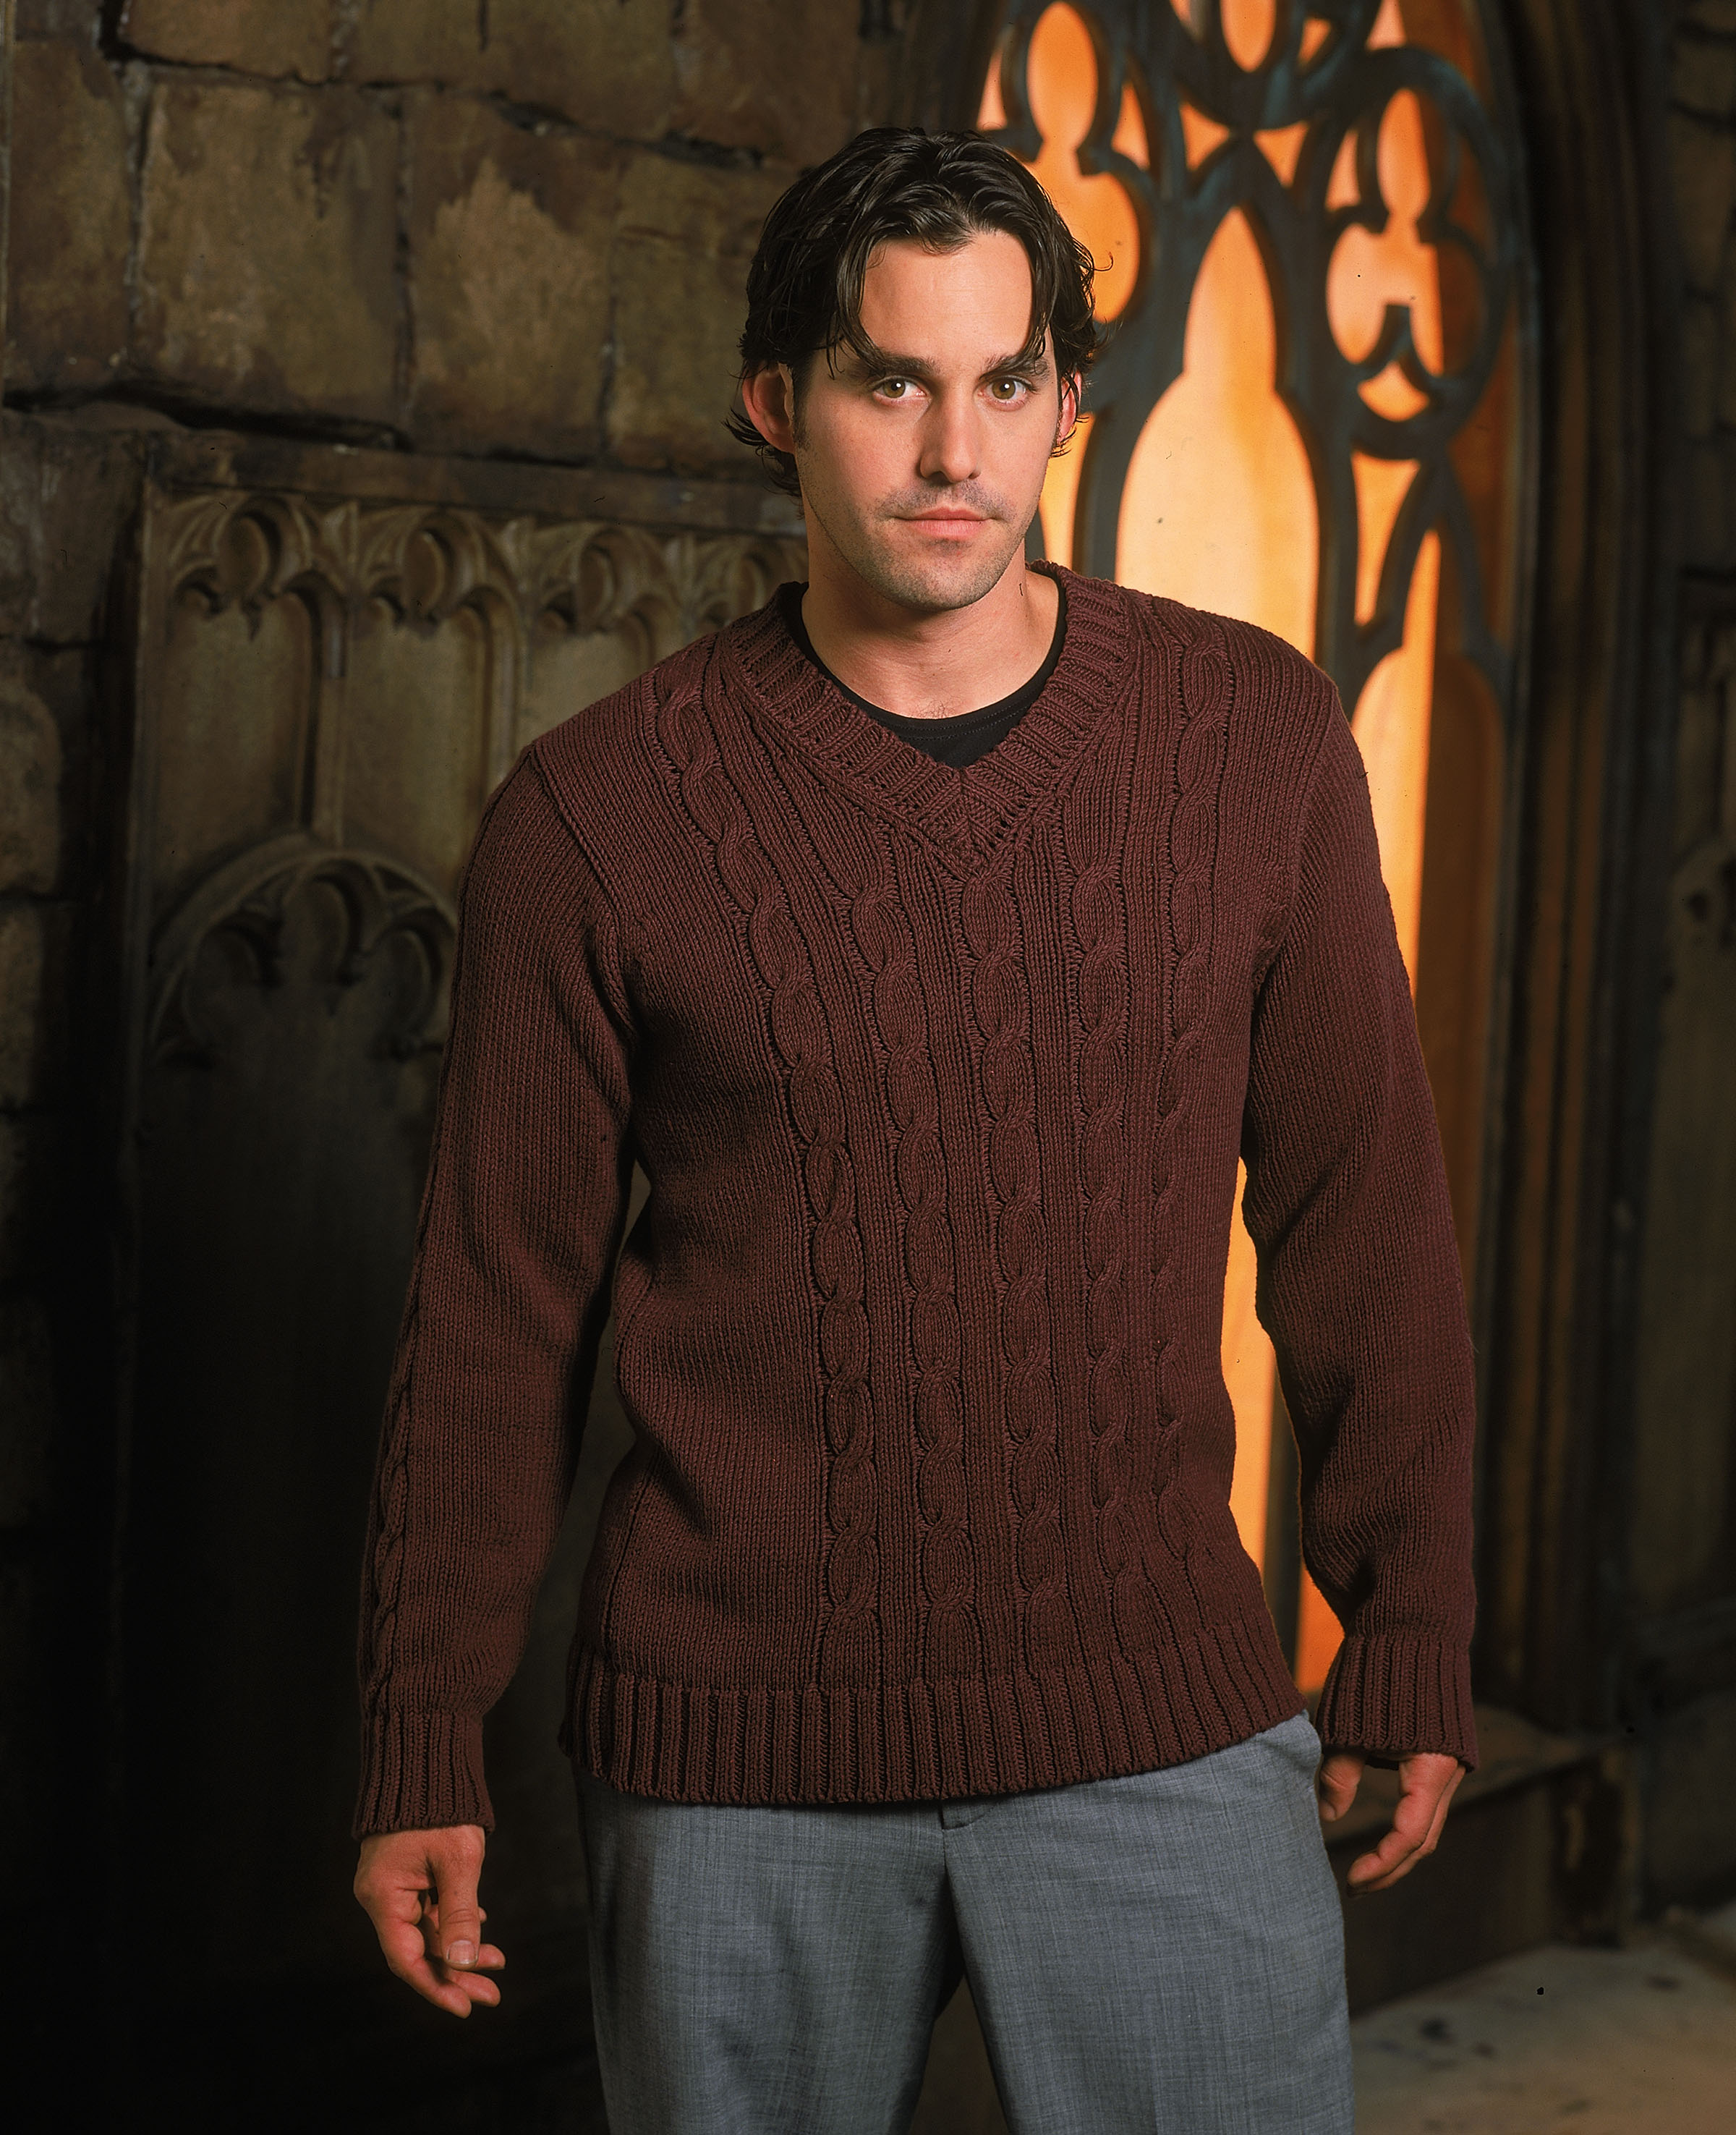 File:Xander season 5.jpg